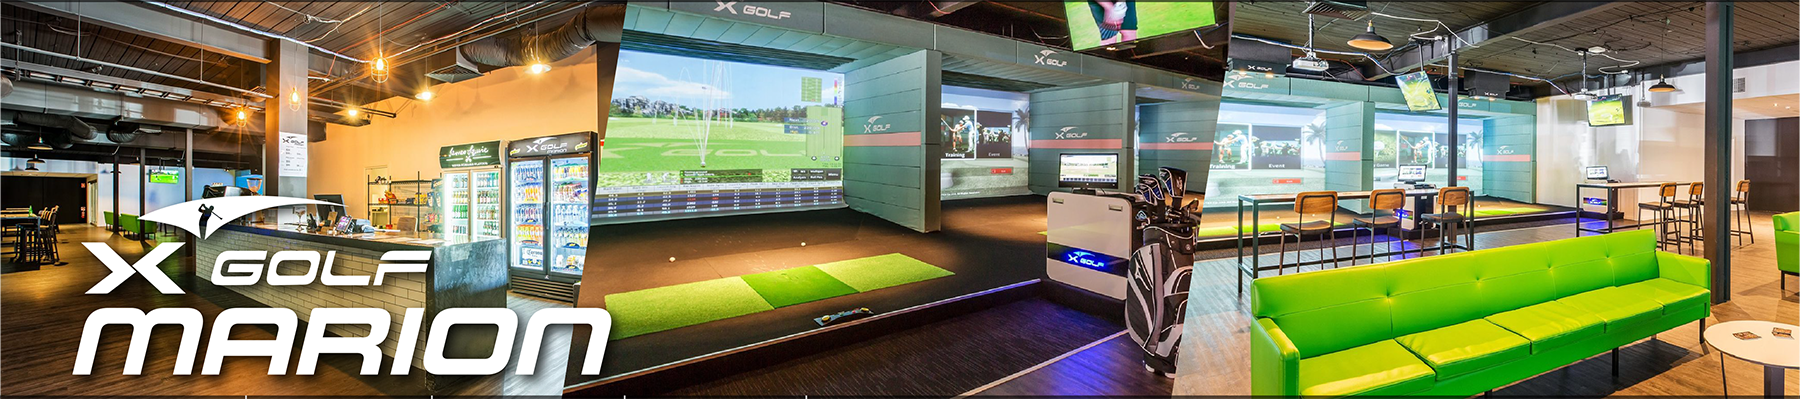 X-Golf Marion Collage - Venue, Bar and Simulators